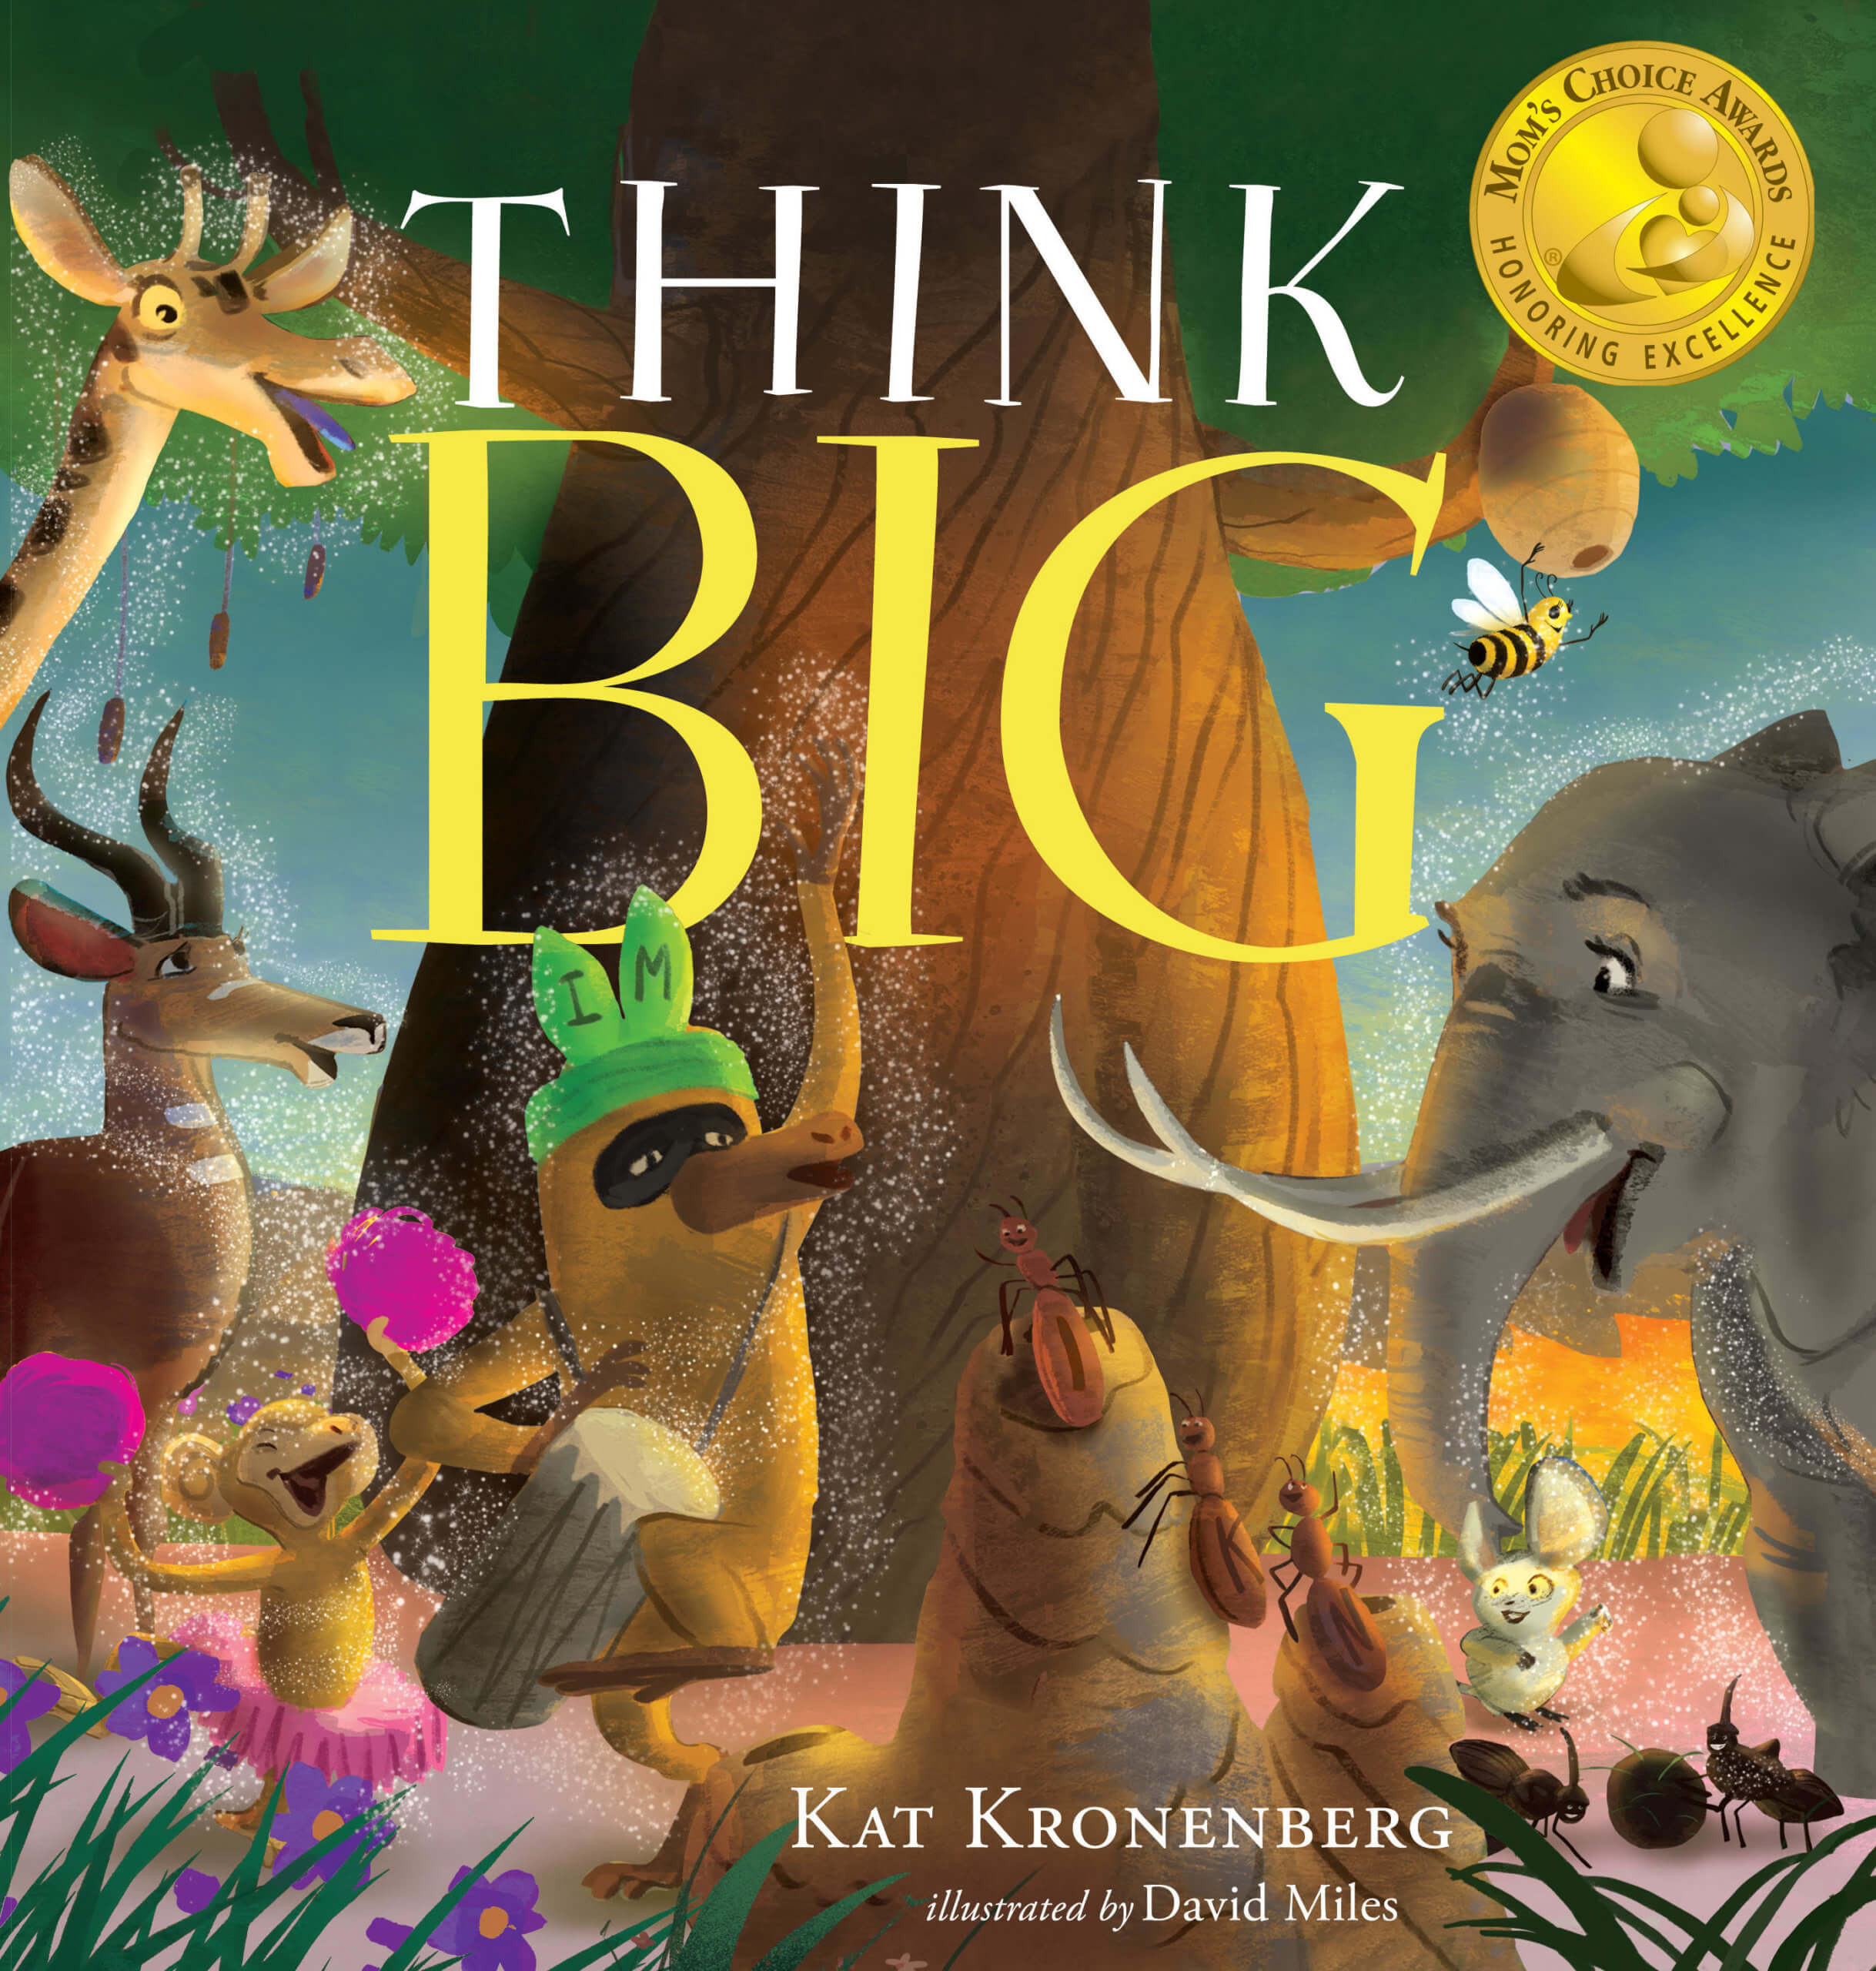 LIVE BIG by picture book author Kat Kronenberg